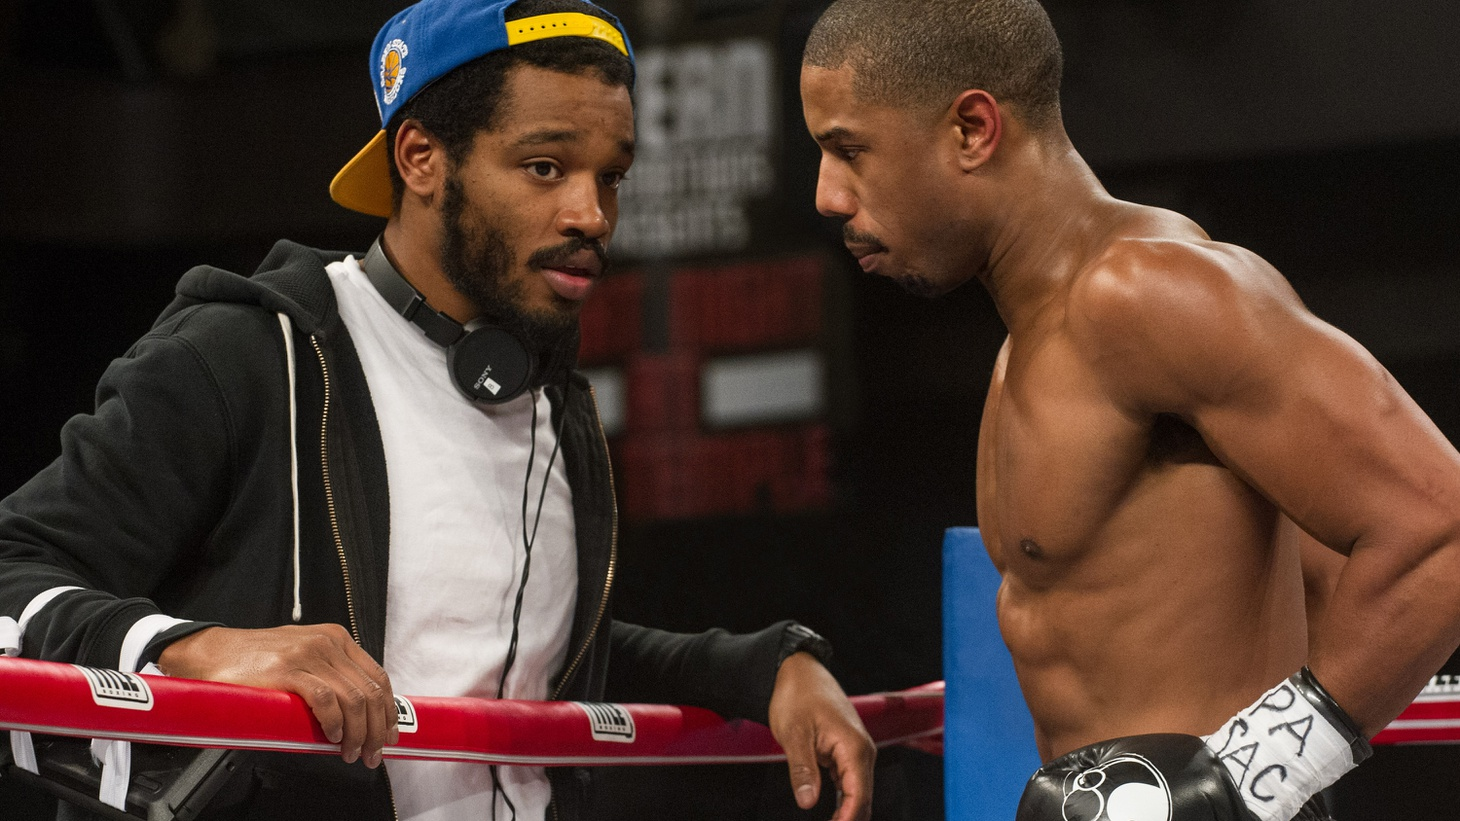 Creed director Ryan Coogler wasn't even born when most of the Rocky movies were made, but he fell in love with the franchise thanks to his father. Coogler tells us how he went from football player to filmmaker, and how he convinced Sylvester Stallone to go another round with Creed.